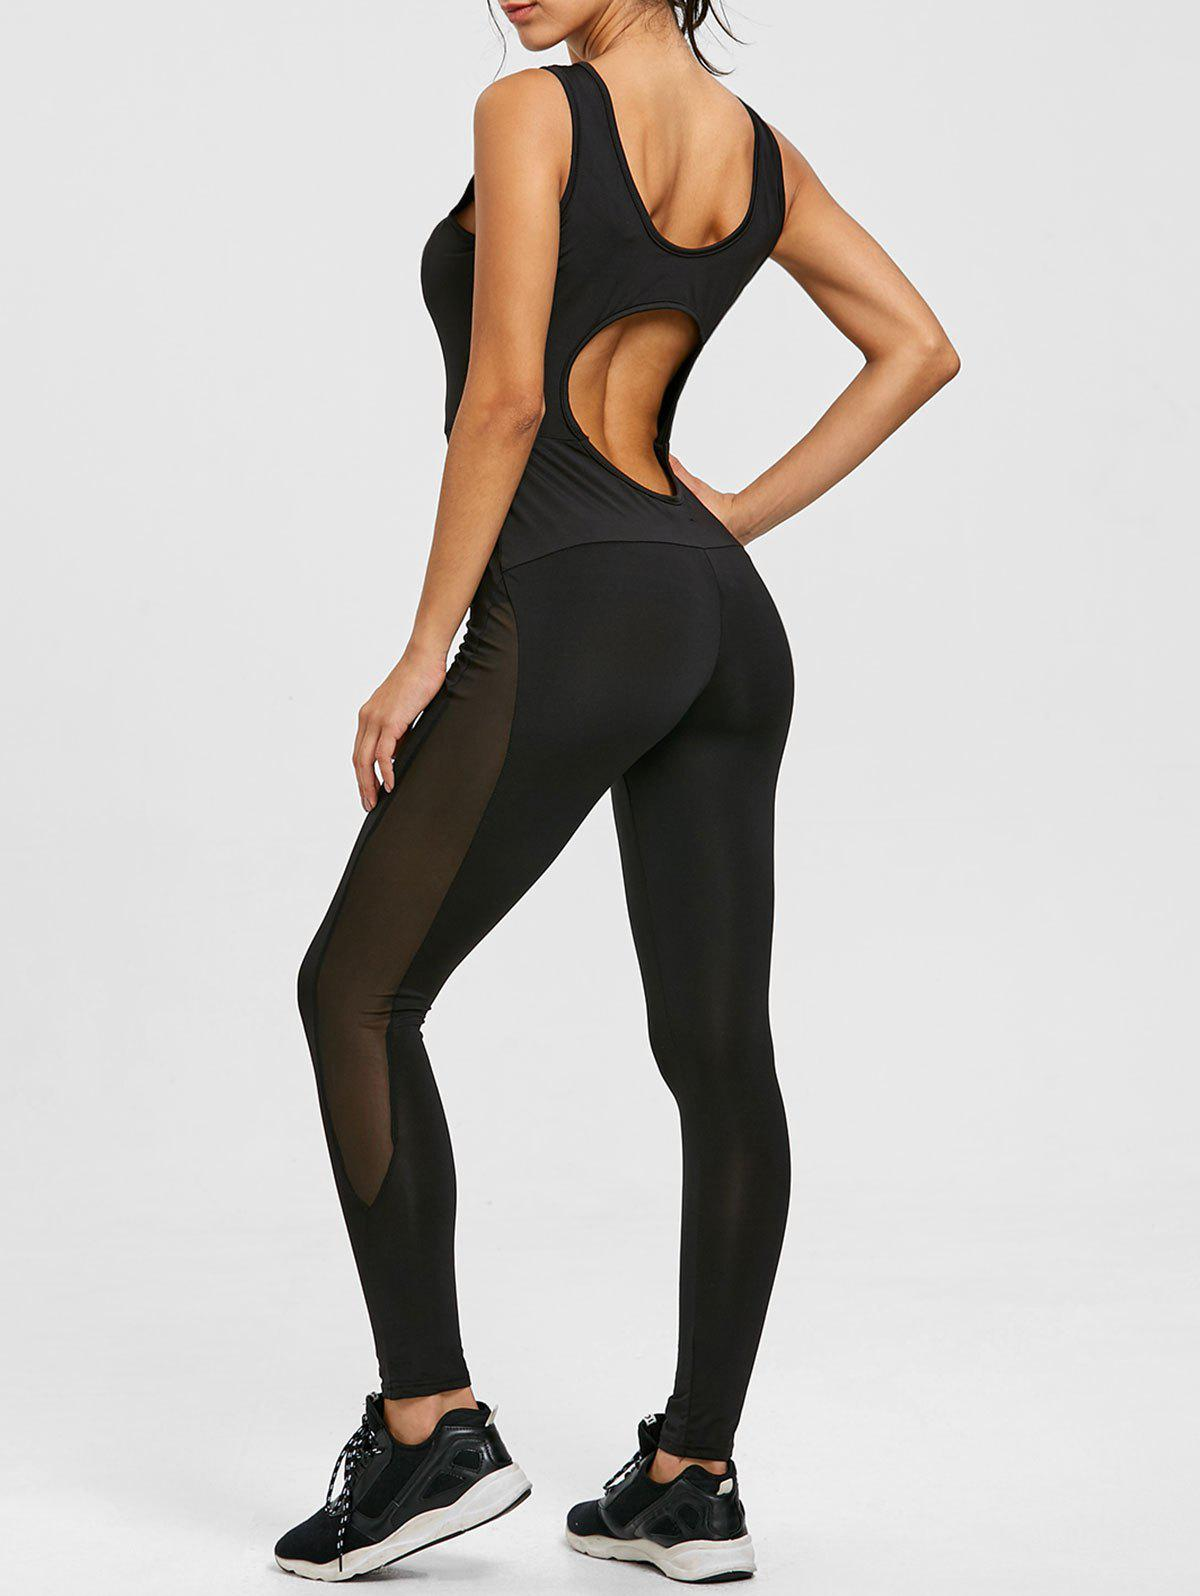 Online Cut Out Mesh Panel See Thru Yoga Jumpsuit